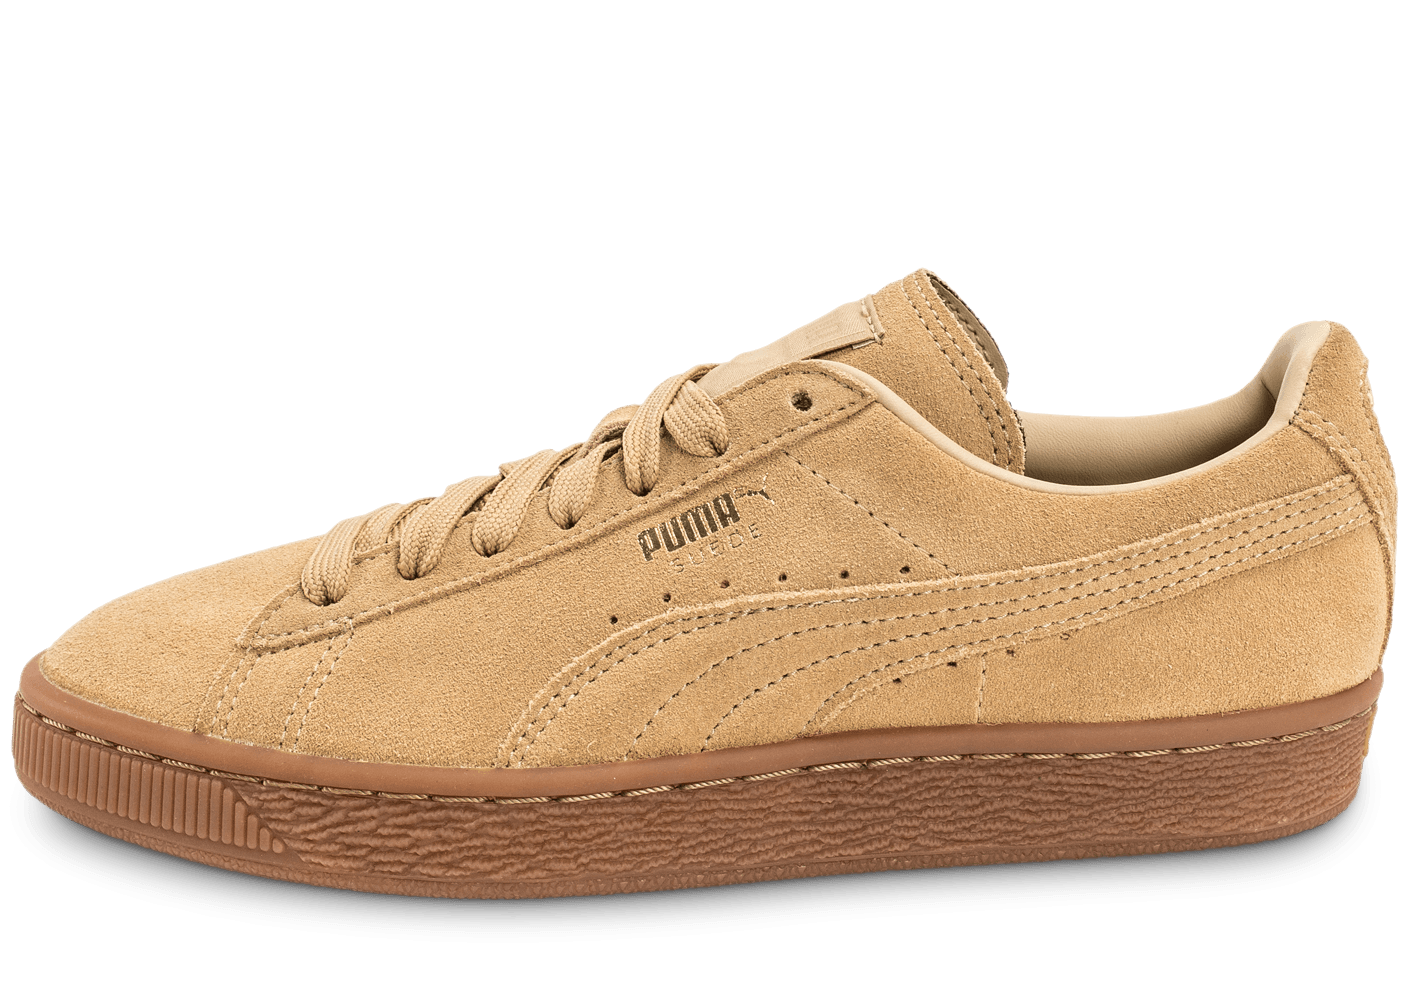 Puma Suede Homme 2017